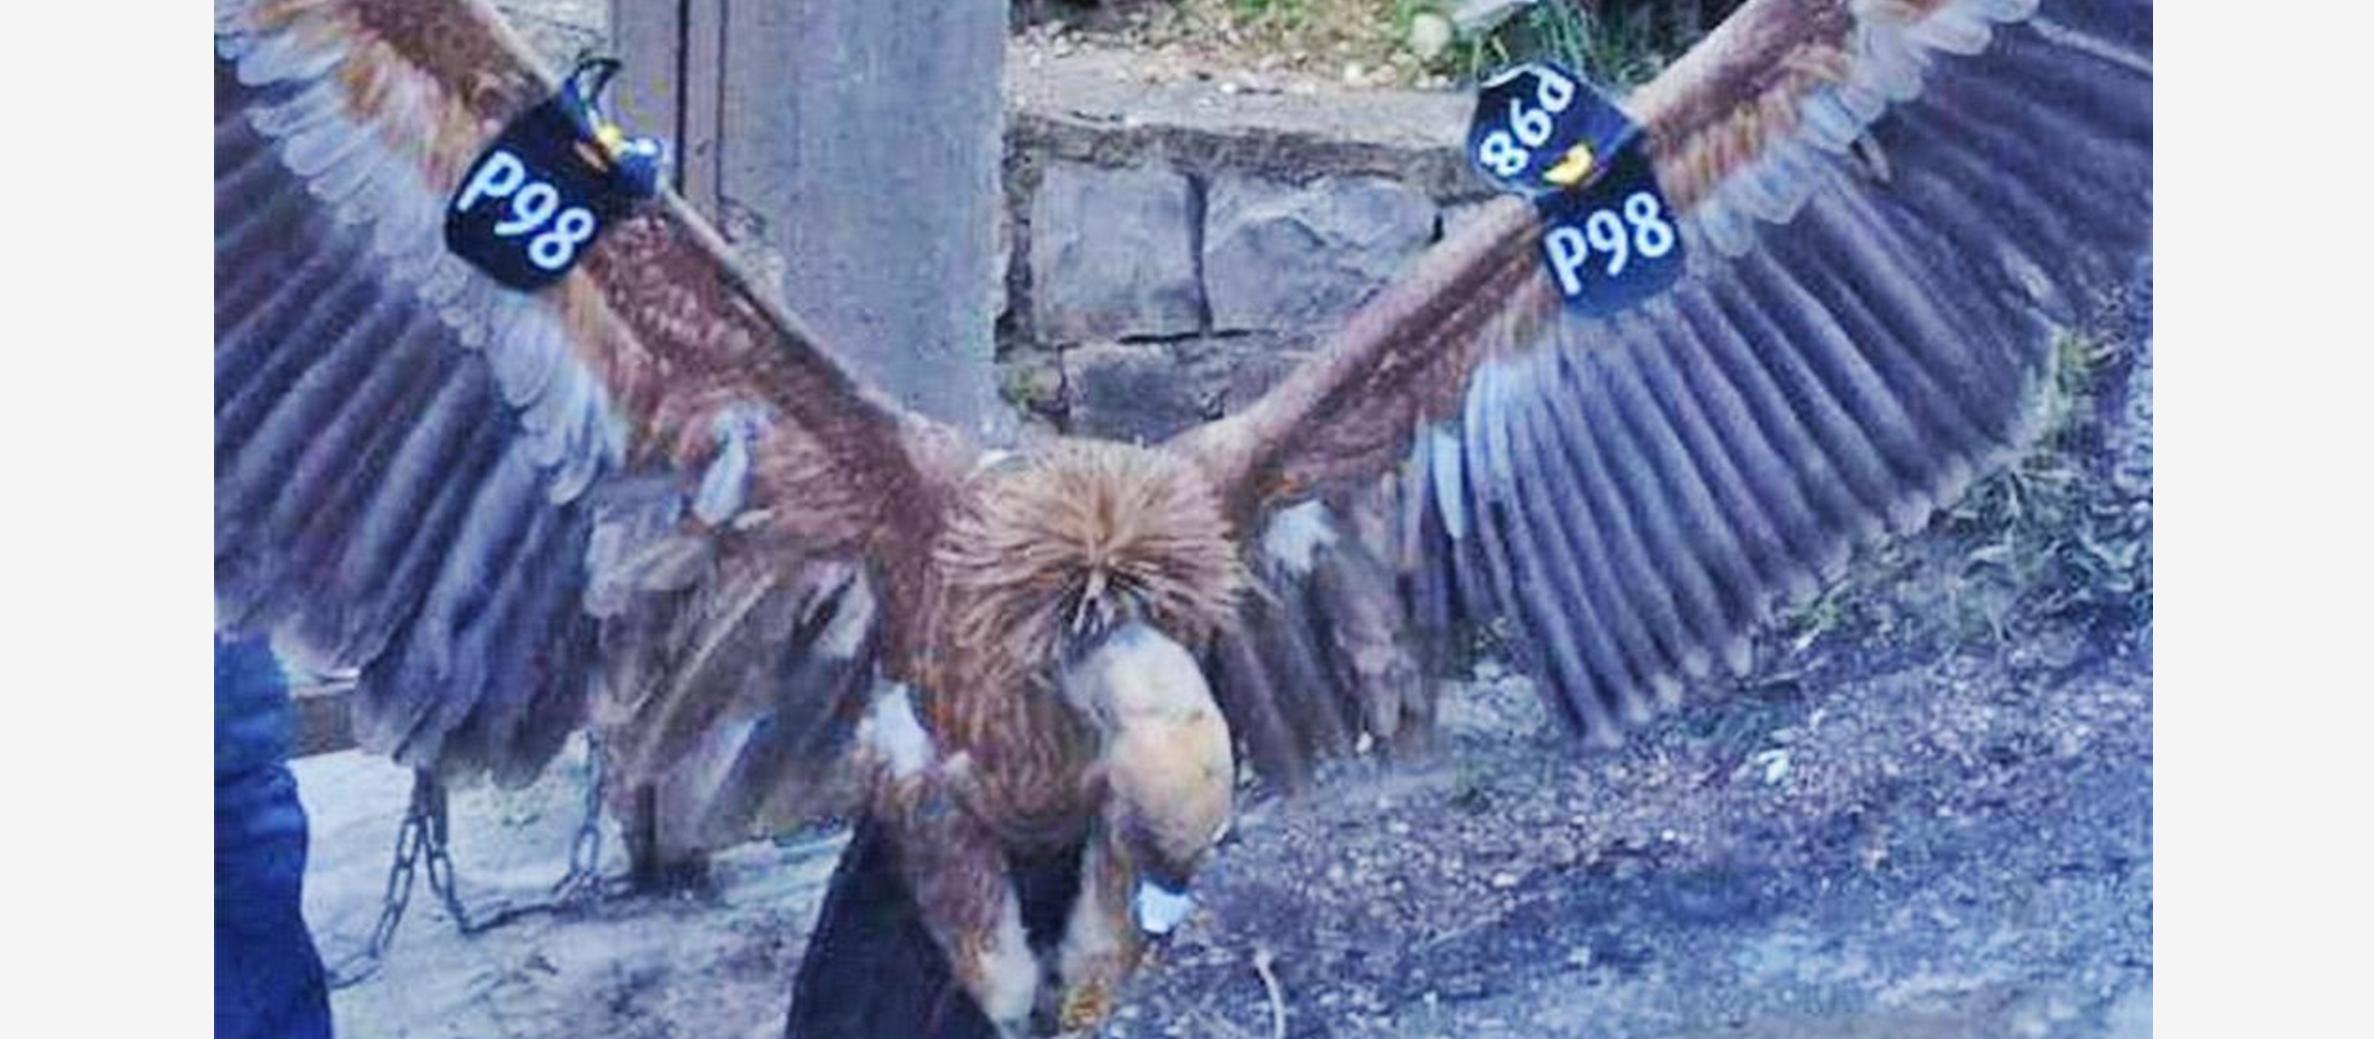 Israeli 'spy vulture' returned safely after being captured in Lebanon